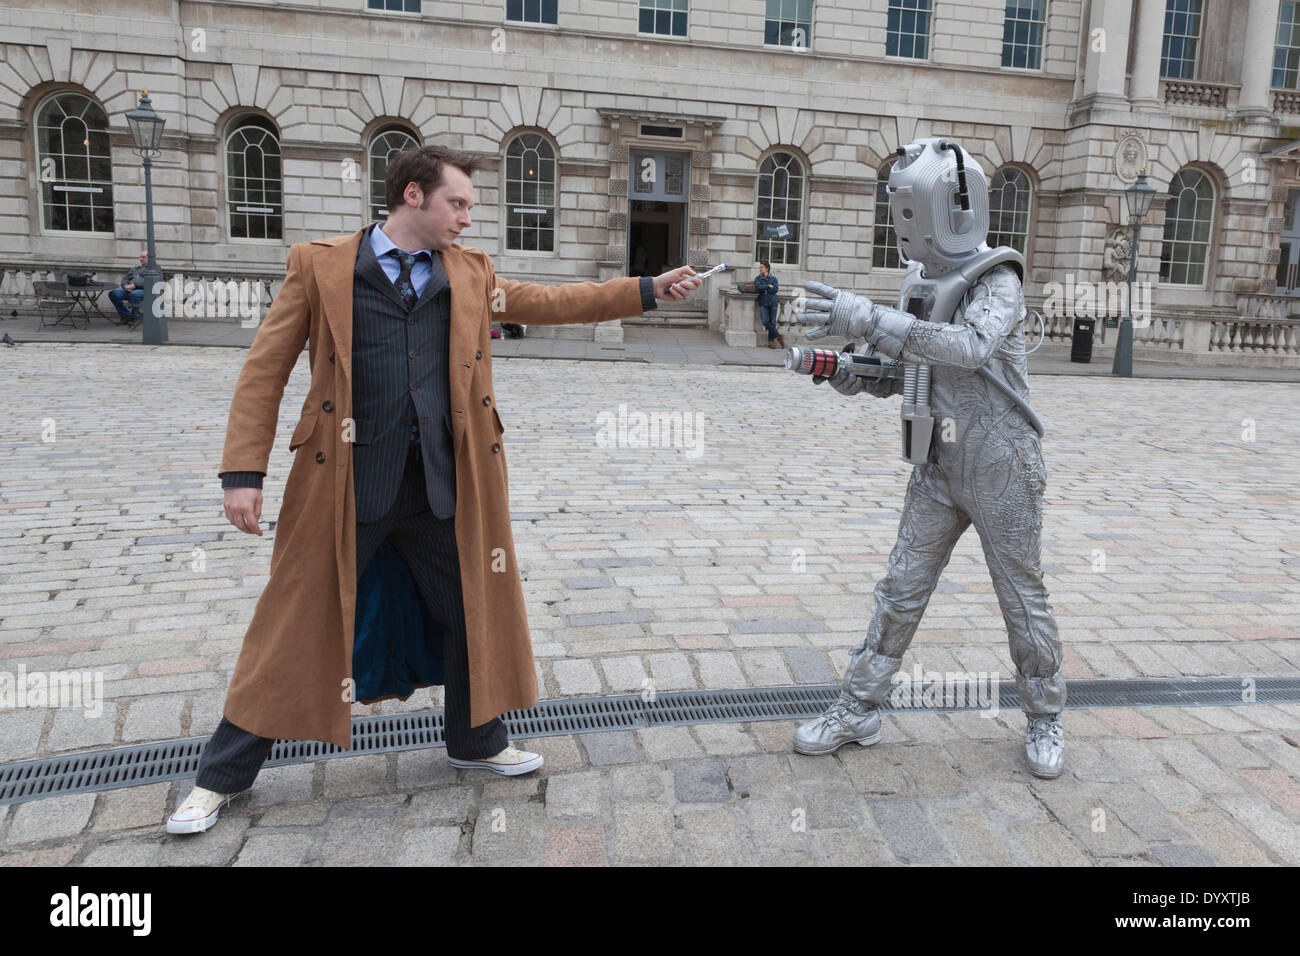 London, UK. 27 April 2014. The Doctor fights a Cyberman. Sci-Fi fans gathered in the Courtyard of Somerset House, London, and dressed up as their favourite science fiction character ahead of a parade through London. This 4th annual parade was organised by Sci-Fi London 14, the London International Festival for Science Fiction and Fantastic Film which runs unil May 4th. Photo: Nick Savage/Alamy Live News - Stock Image